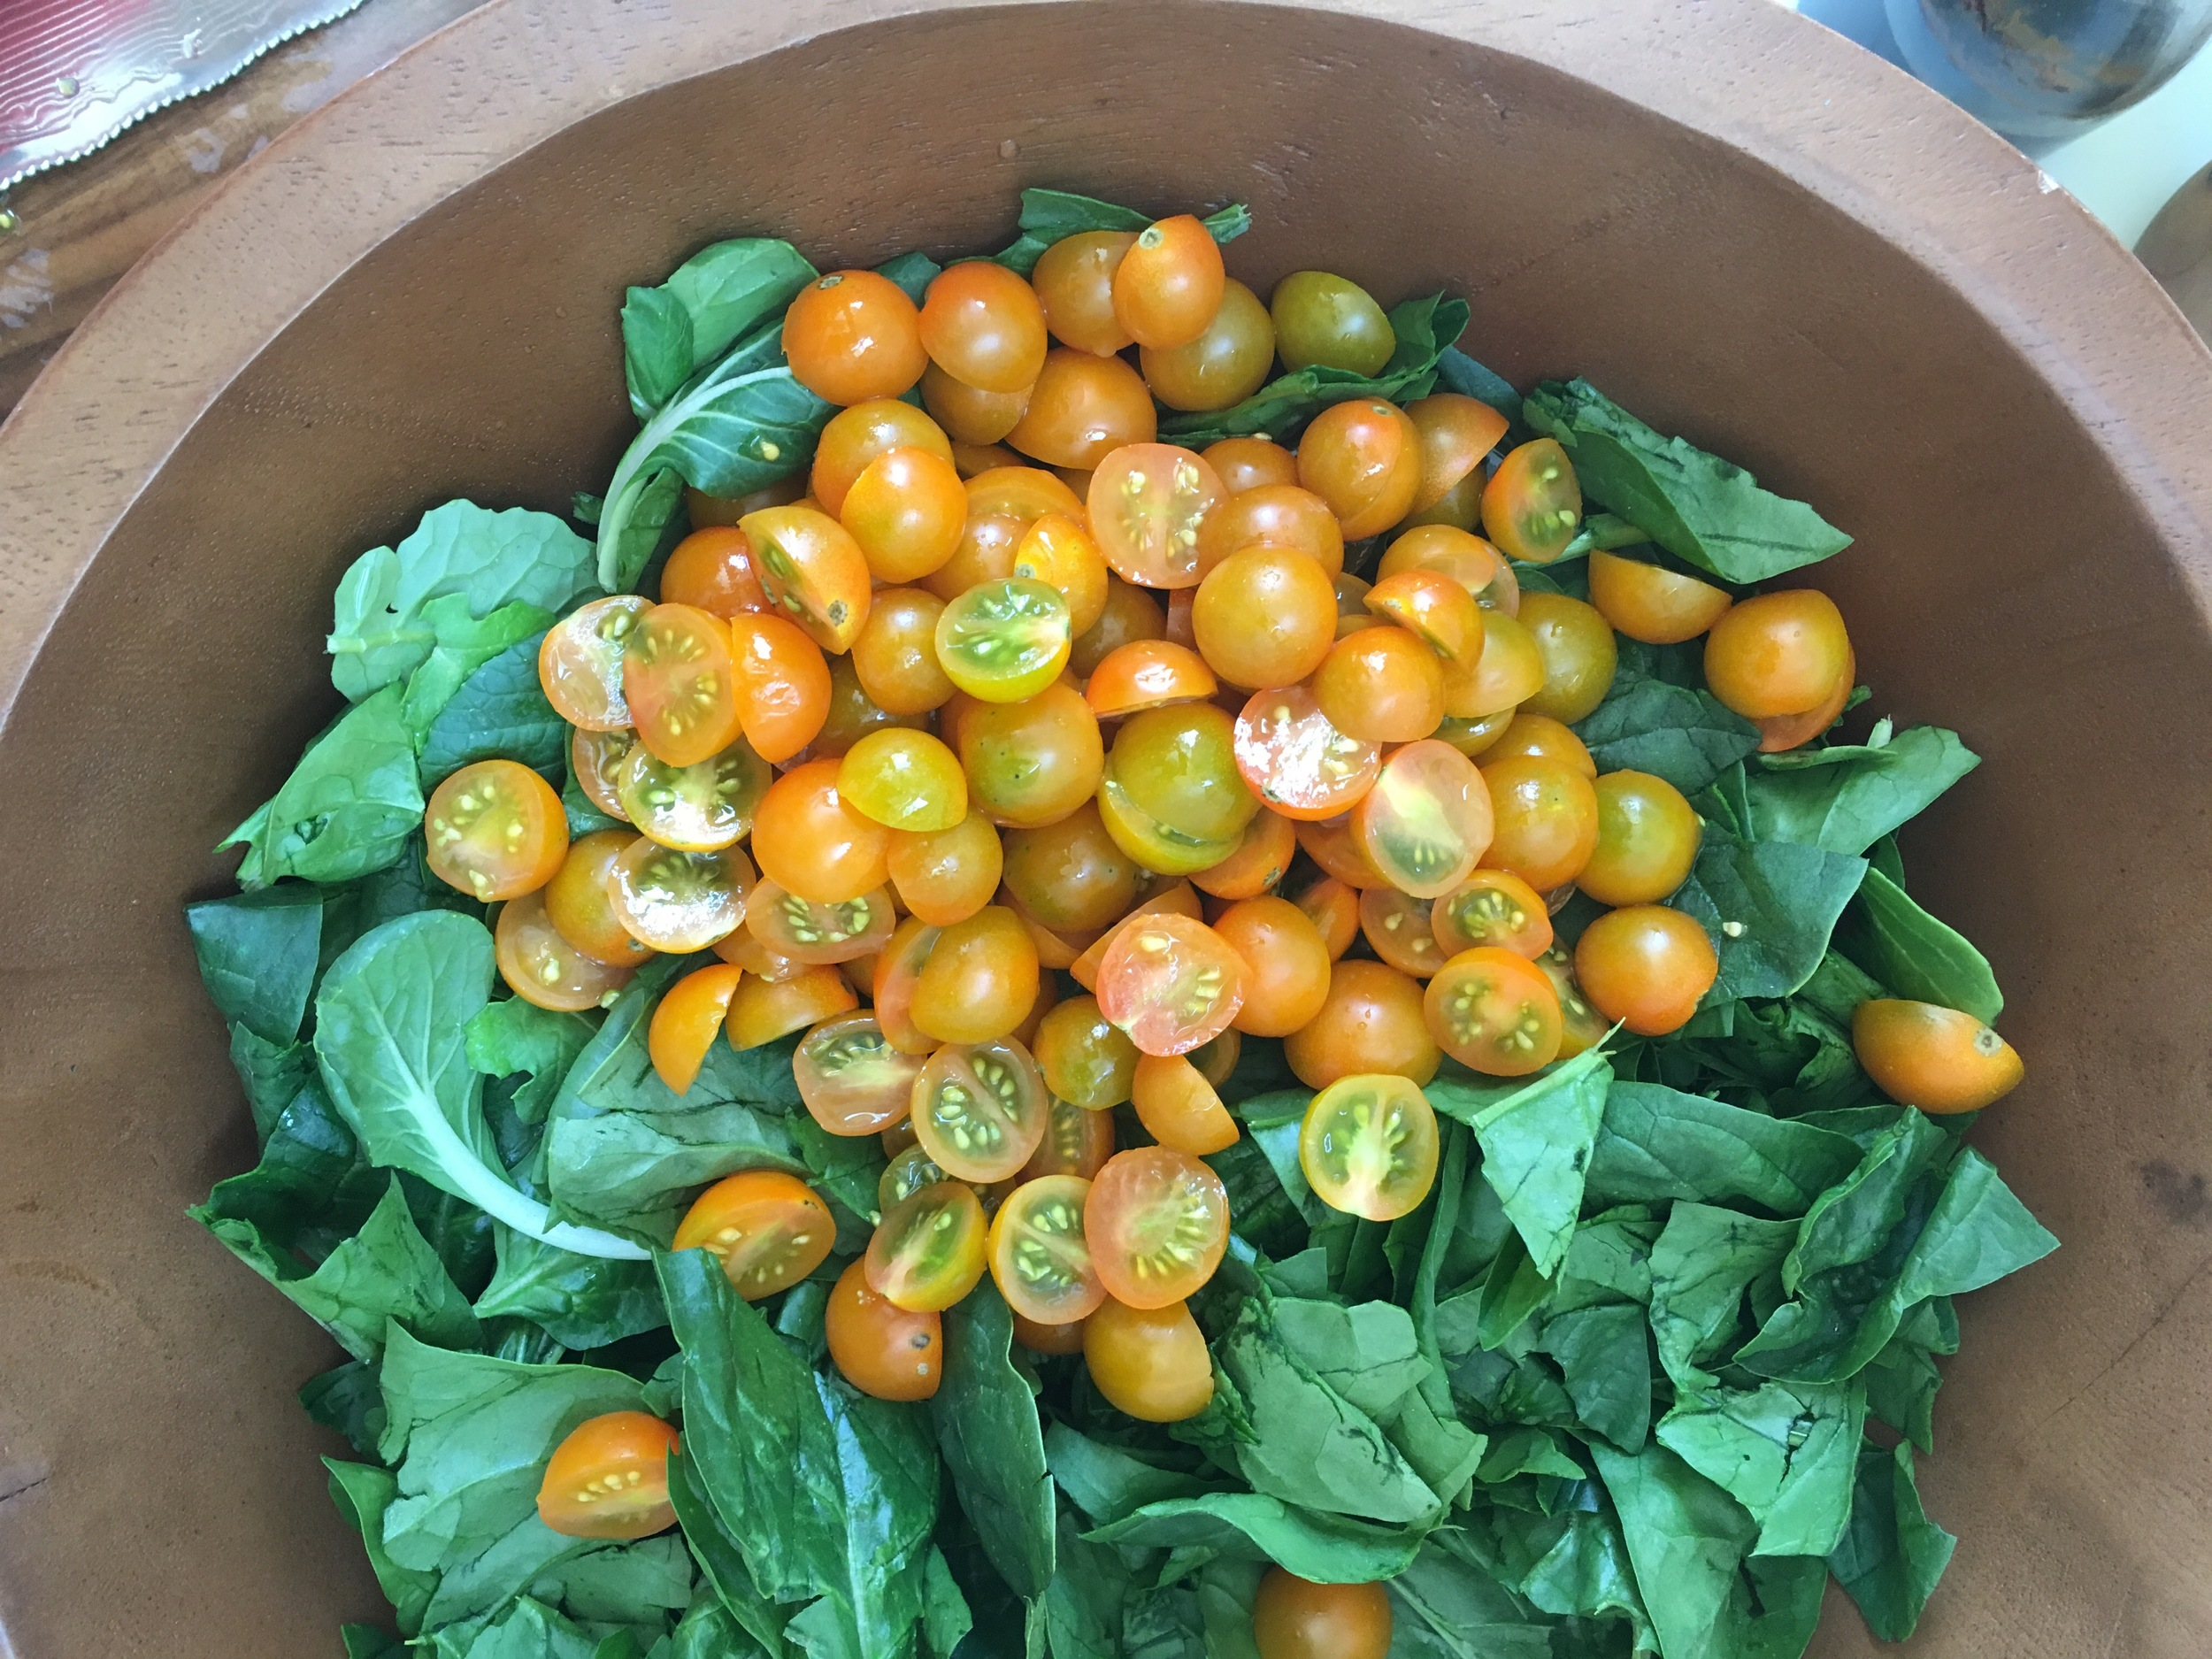 No summer salad is complete without some sort of heirloom tomato when available